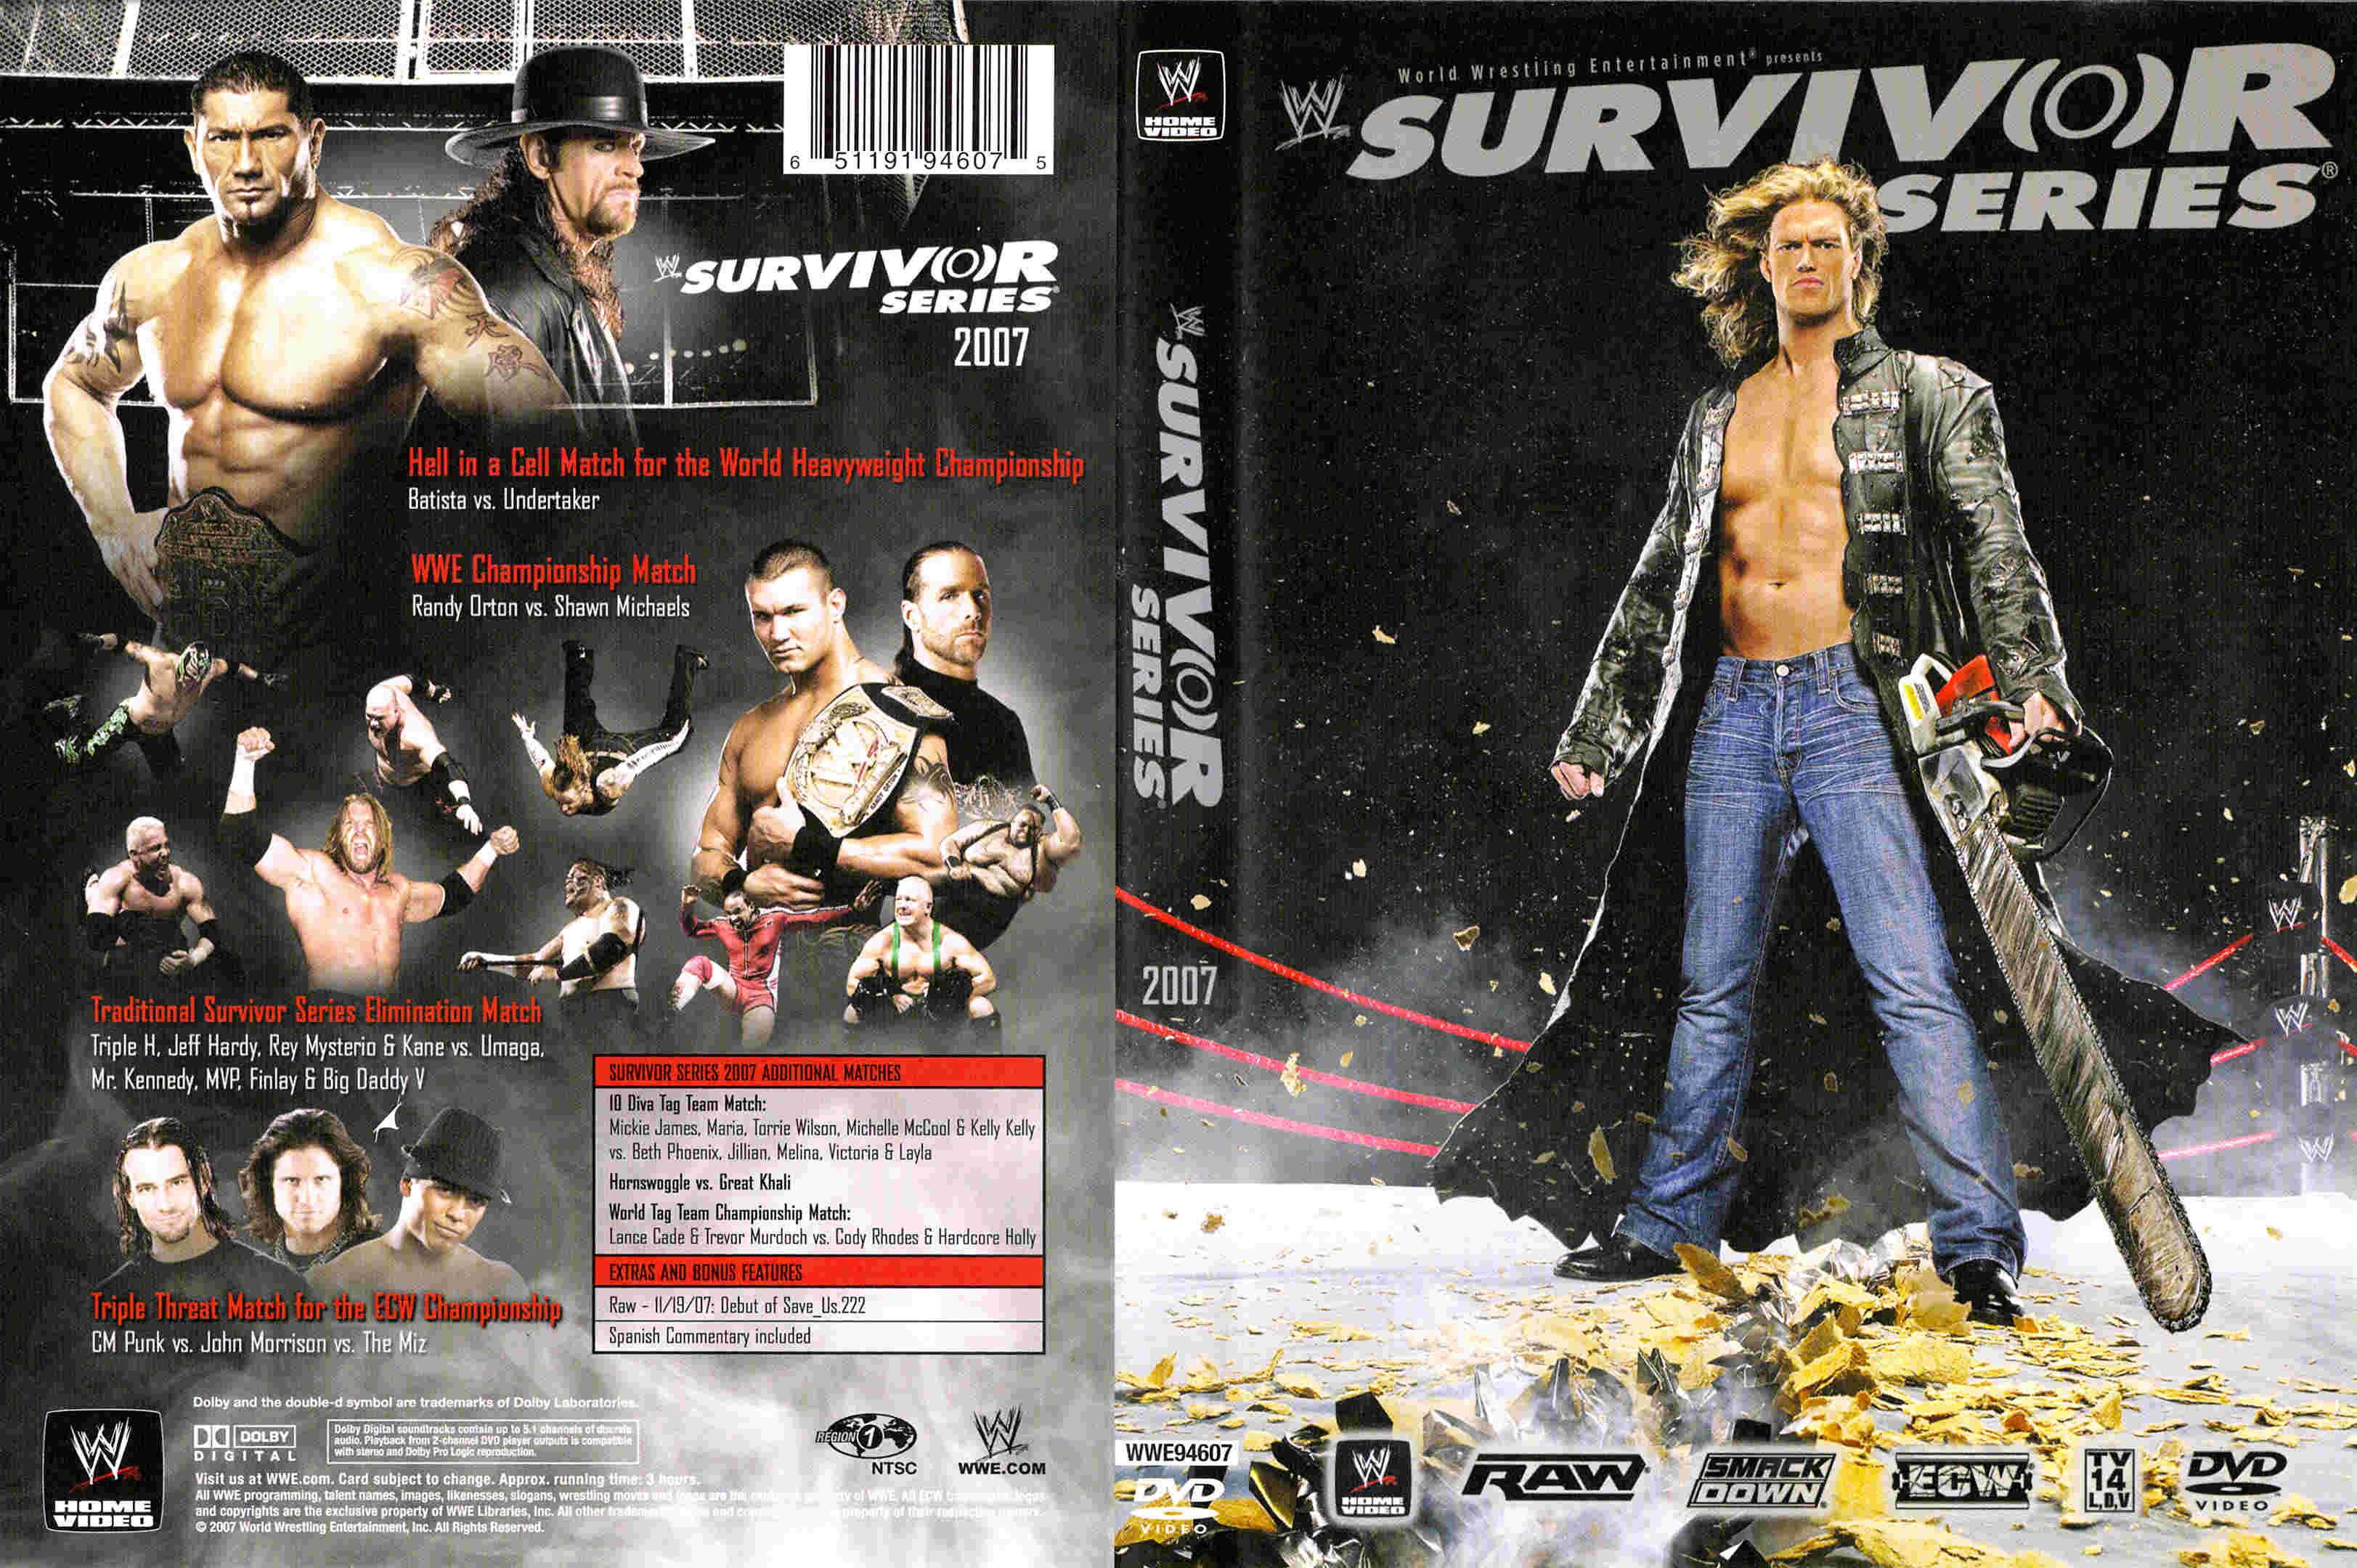 TJR Retro: WWE Survivor Series 2007 Review - TJR Wrestling